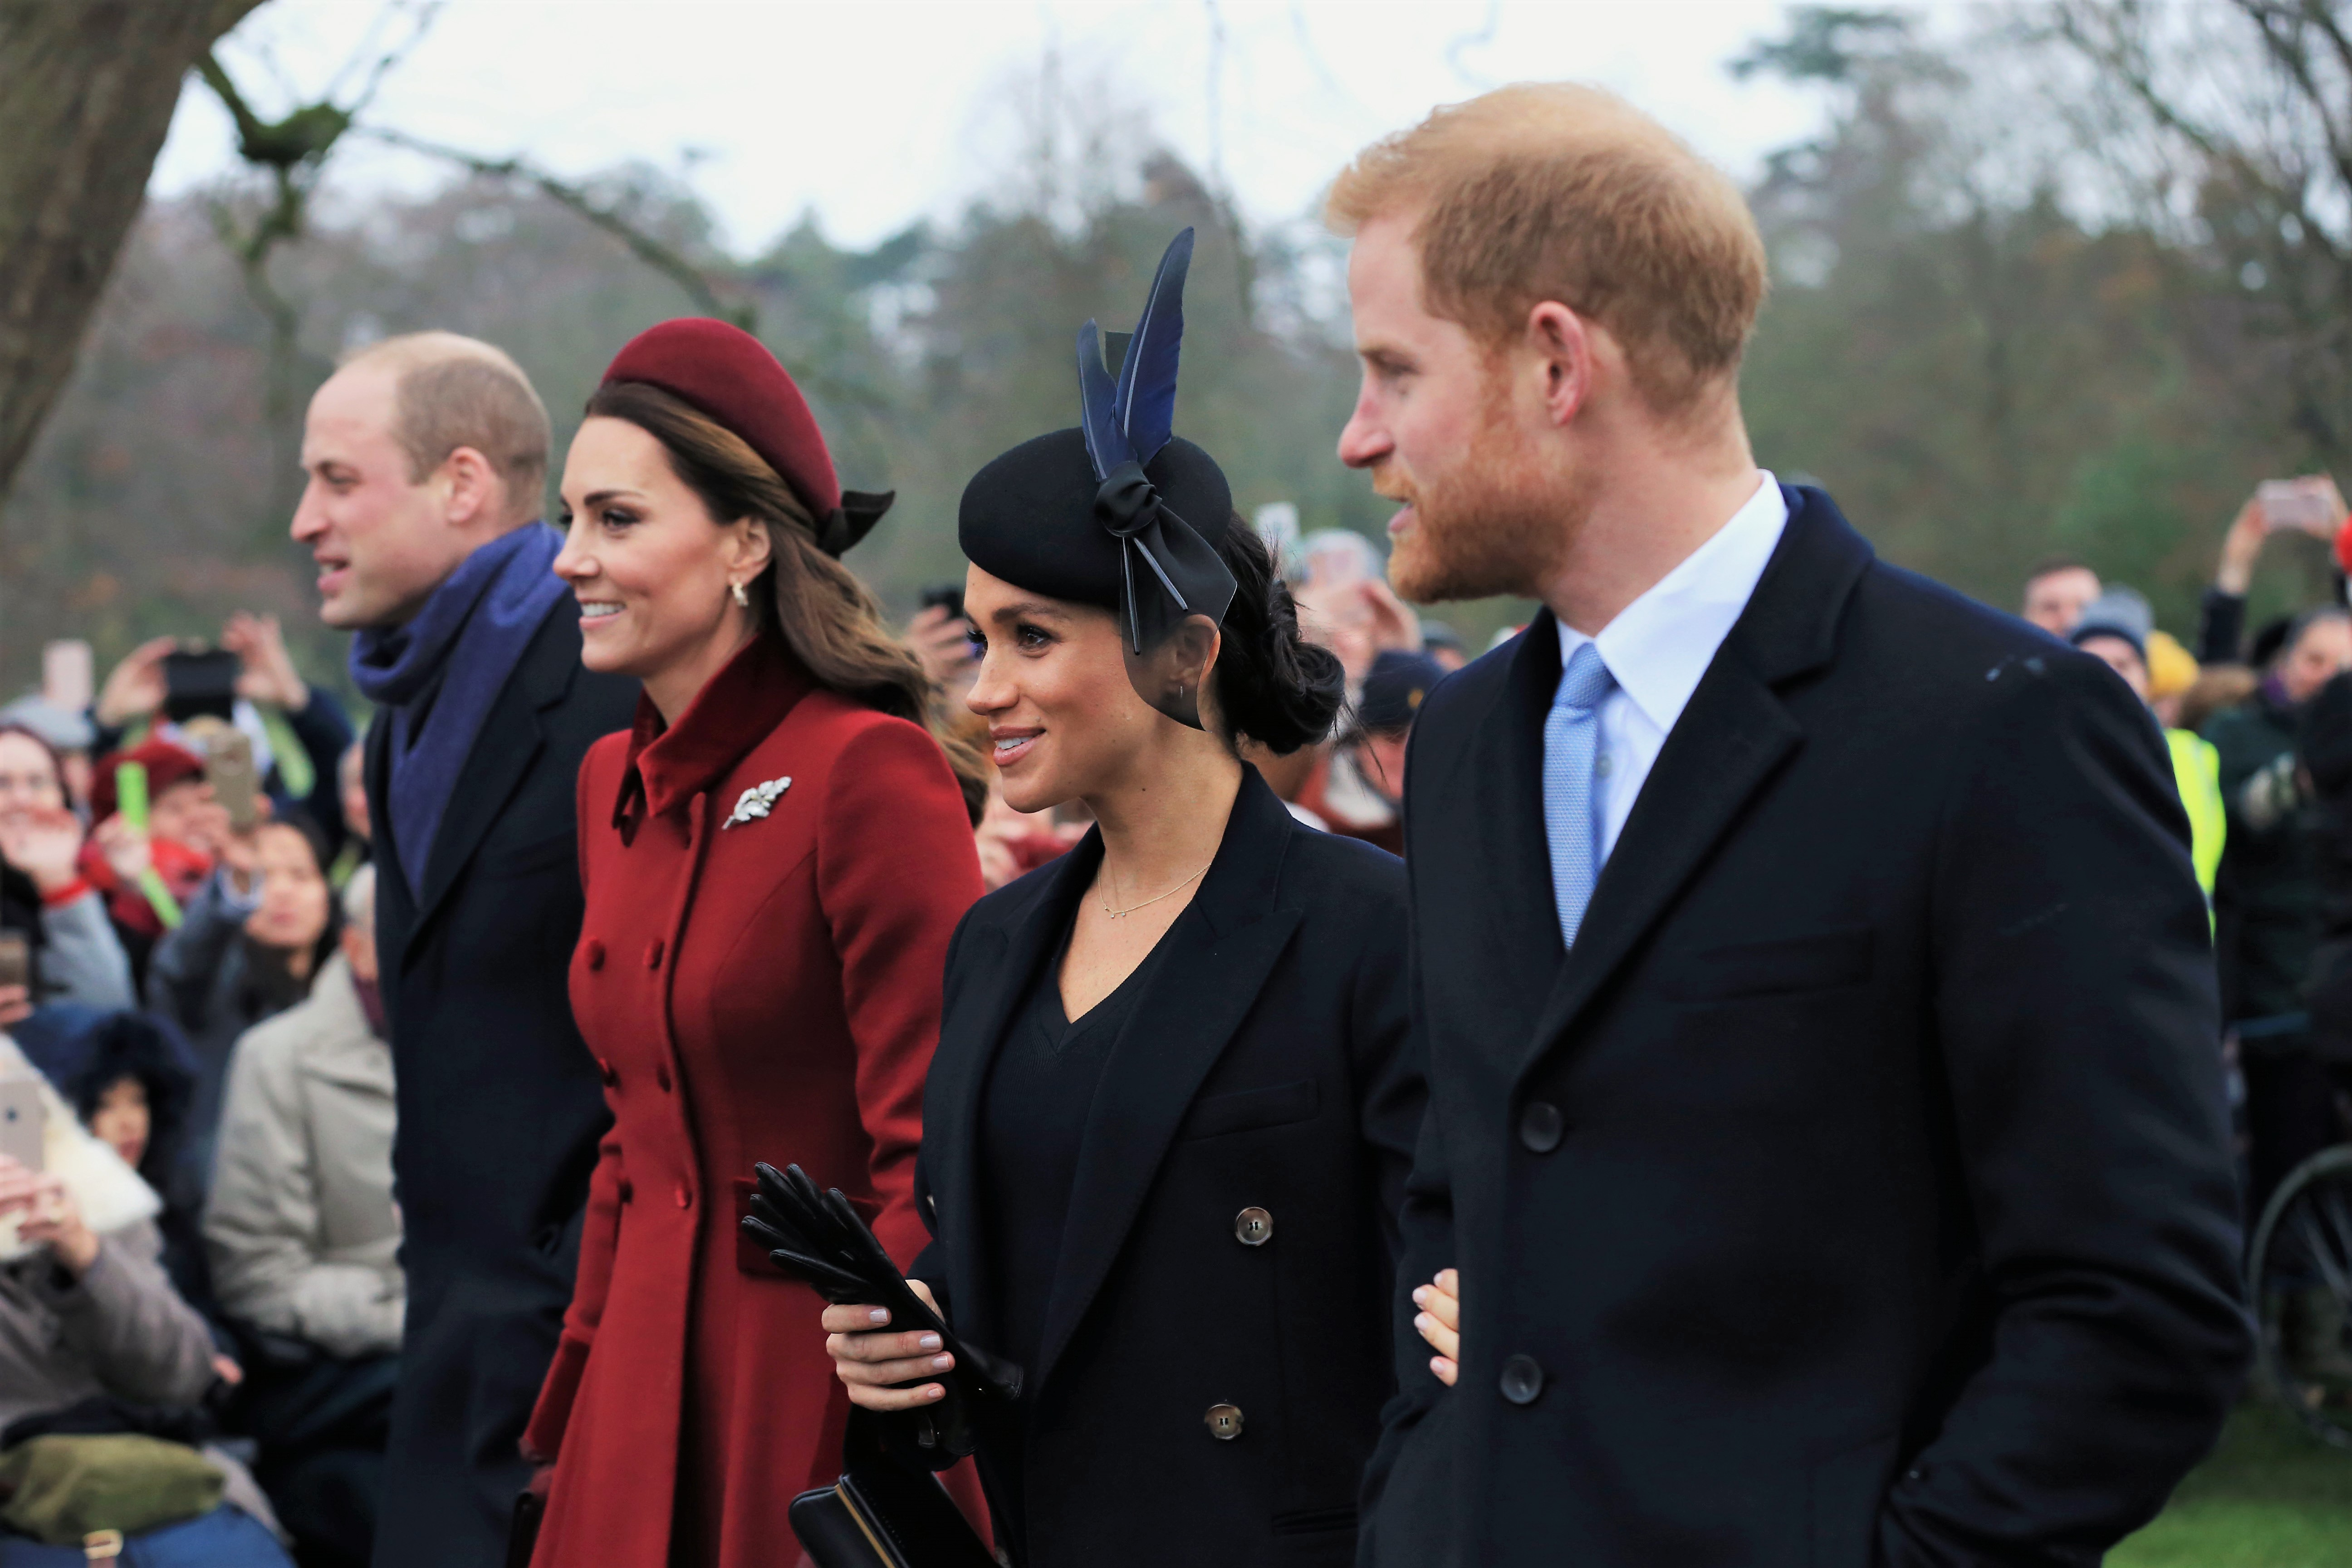 Prince William Kate Middleton Meghan Markle and Prince Harry Walking Arms Linked